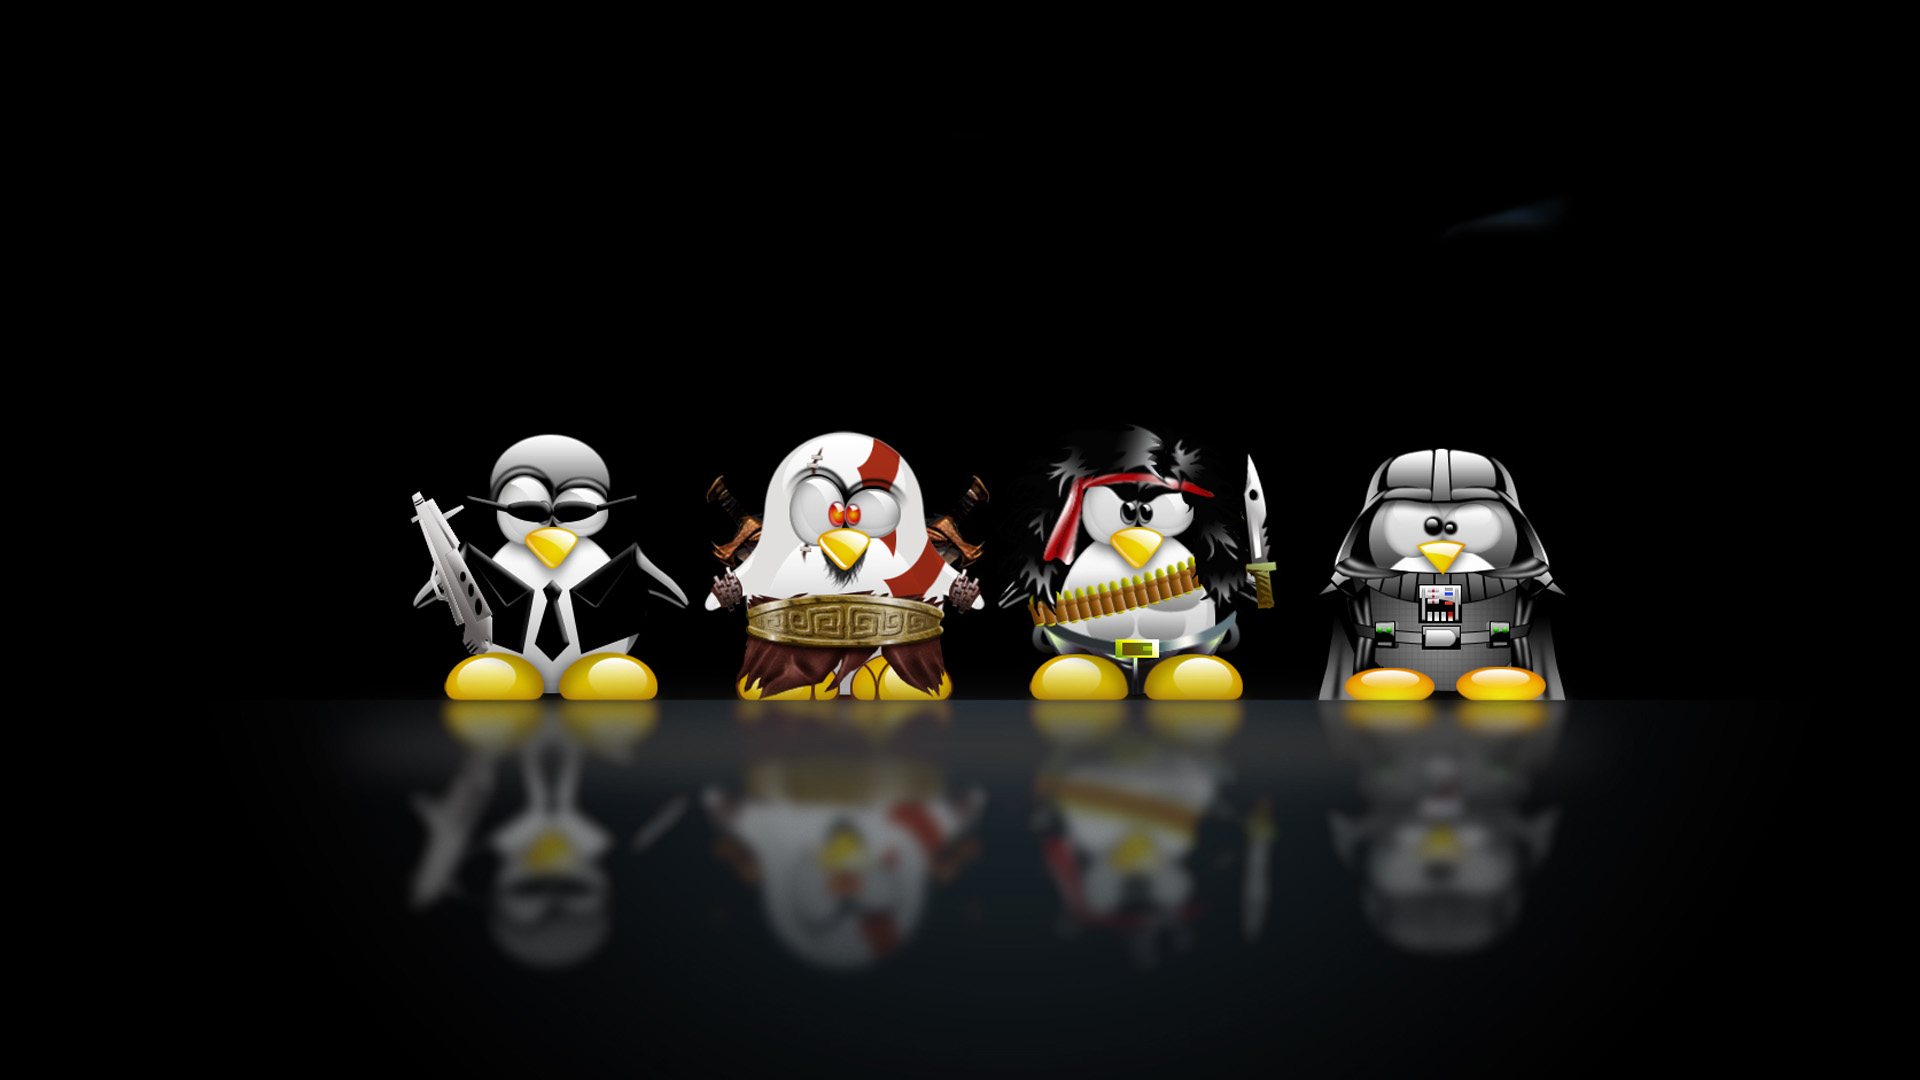 Download 45 Awesome Linux Wallpapers 1920x1080